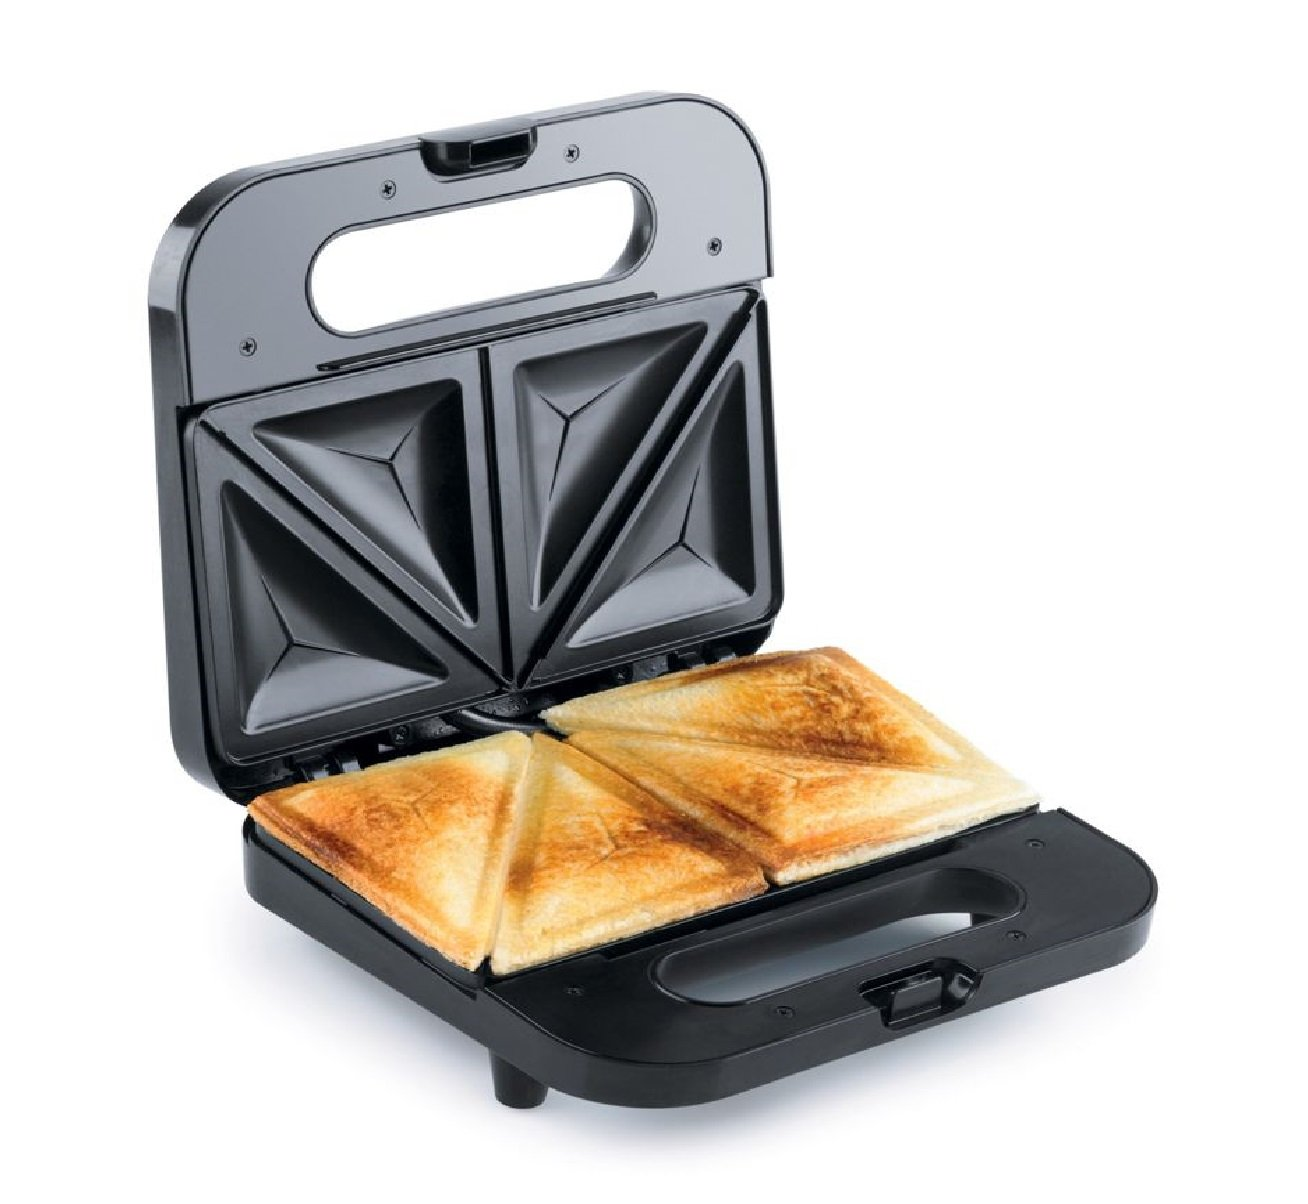 Breville VST057 2 Slice Sandwich Toaster Black Amazon